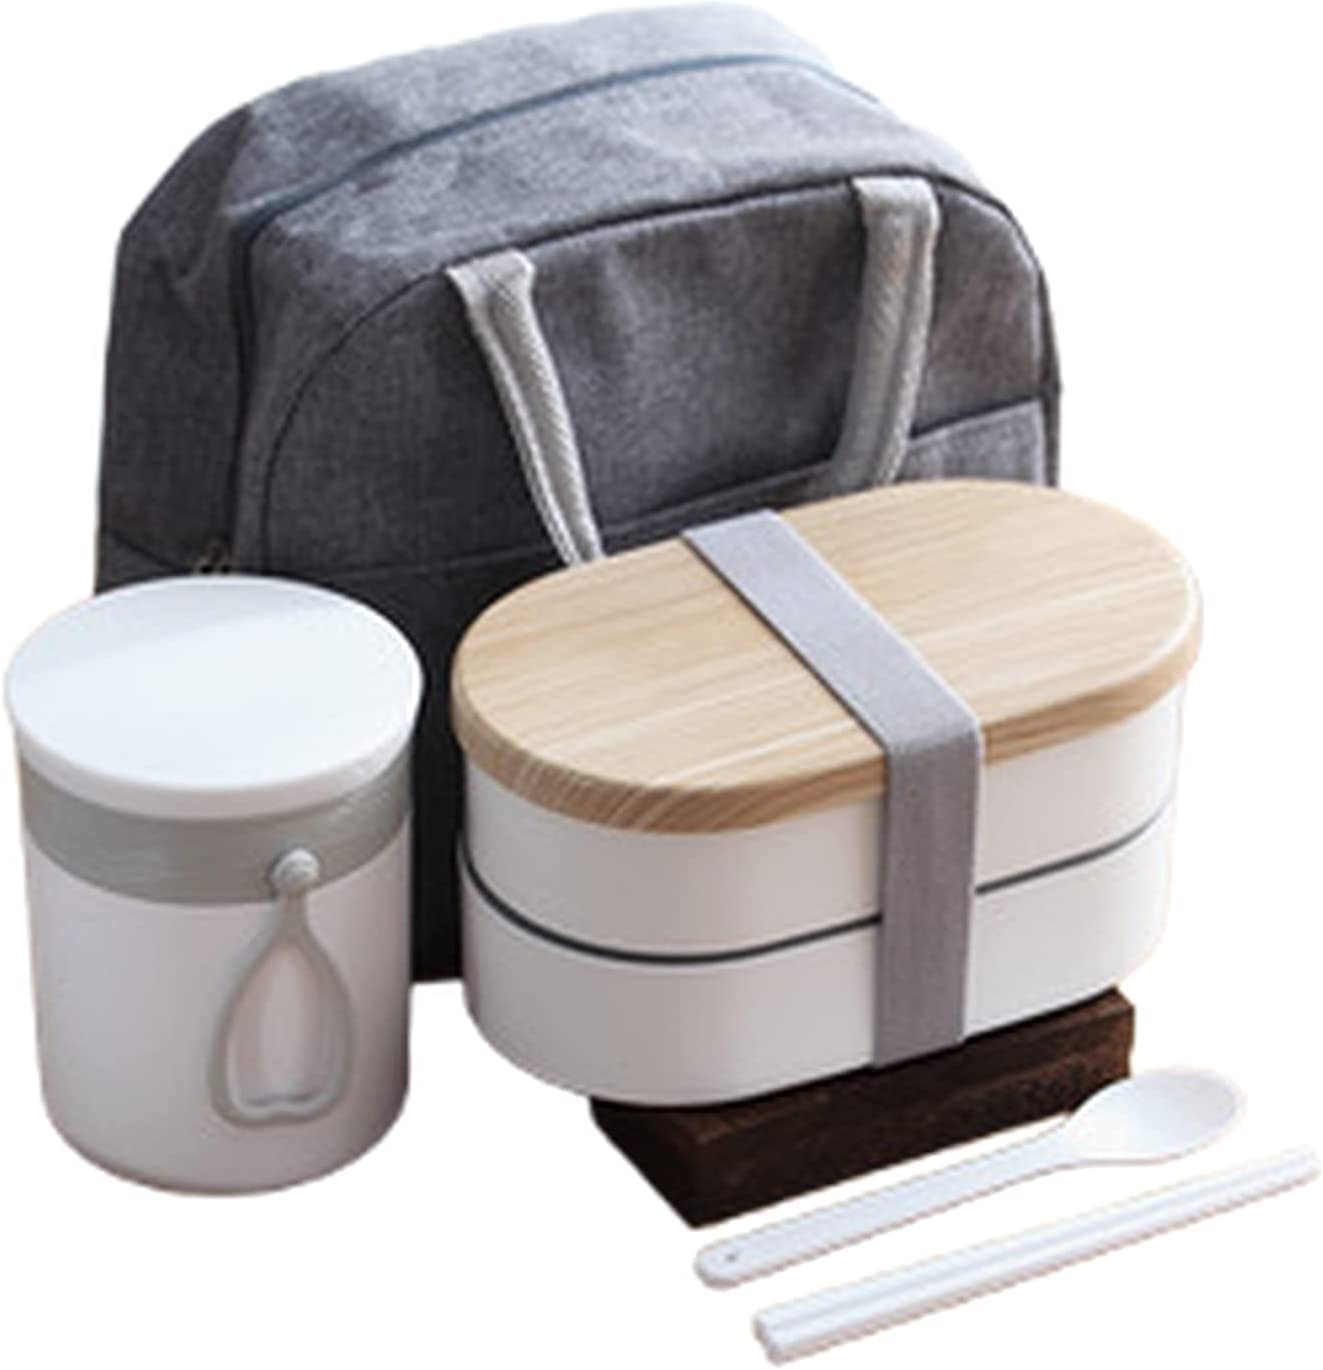 Bento Many popular brands famous Box Adult Double Food Ma PP Friendly Environmentally